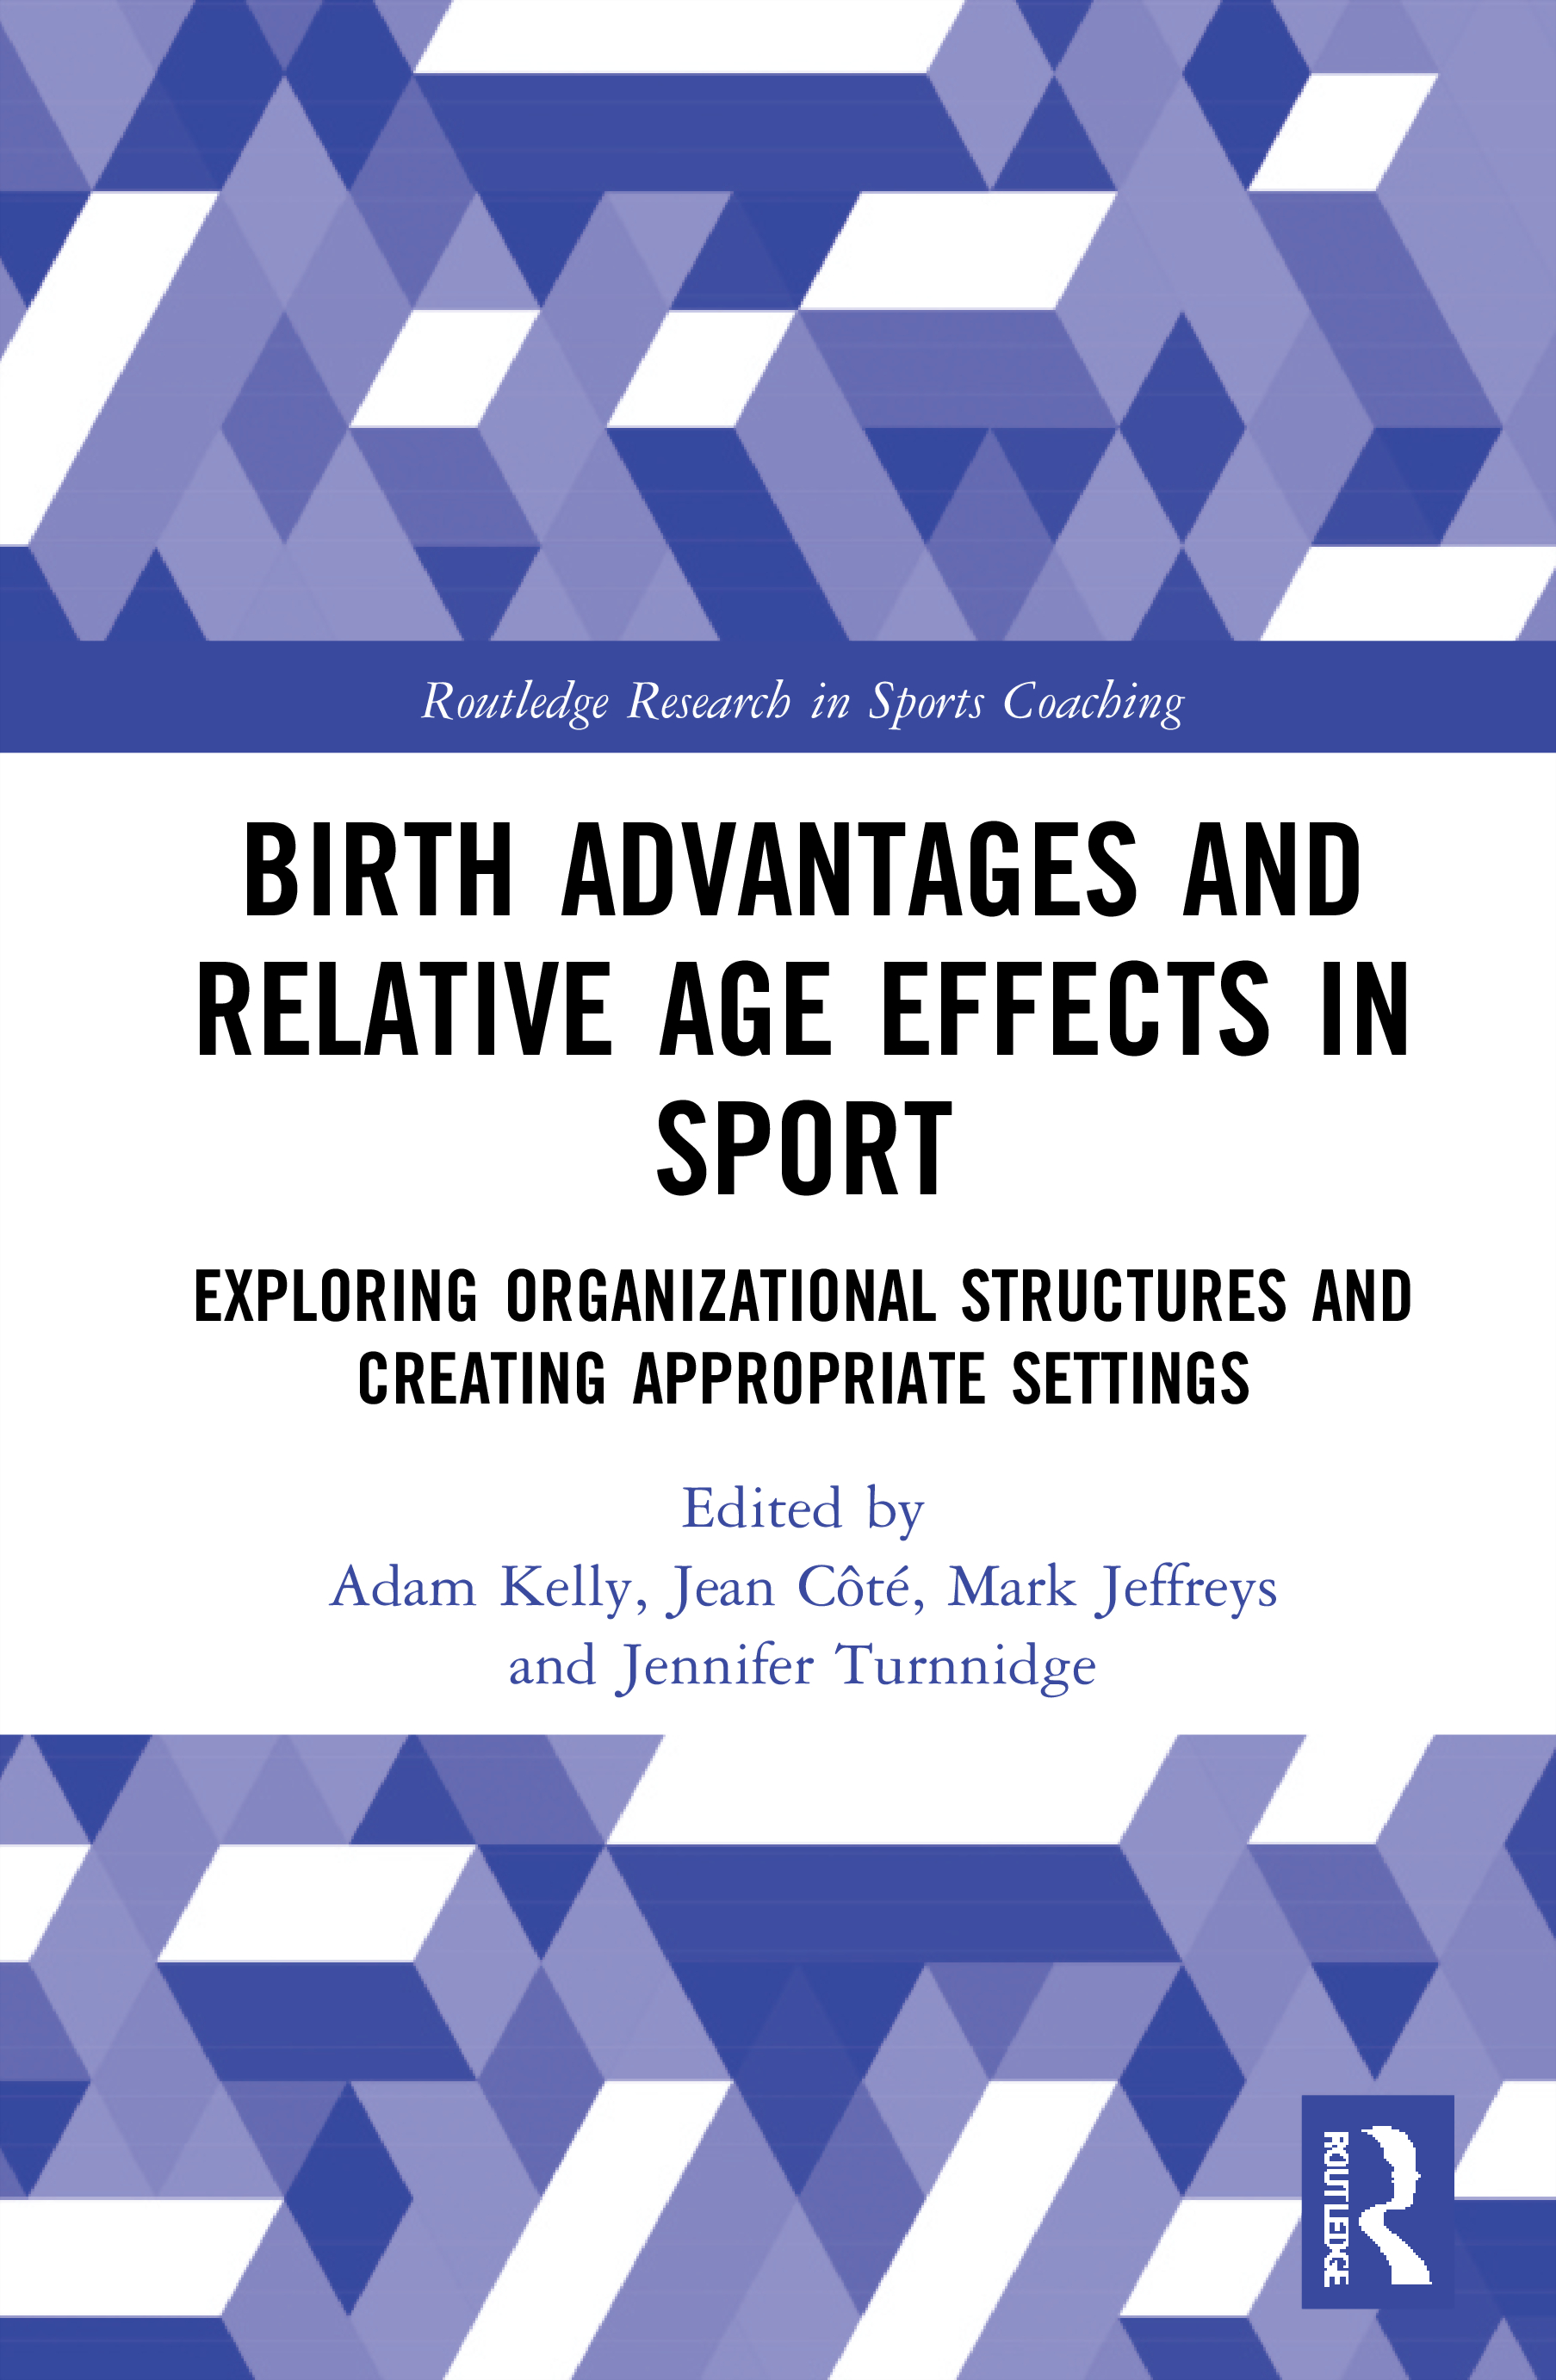 The average team age method and its potential to reduce relative age effects